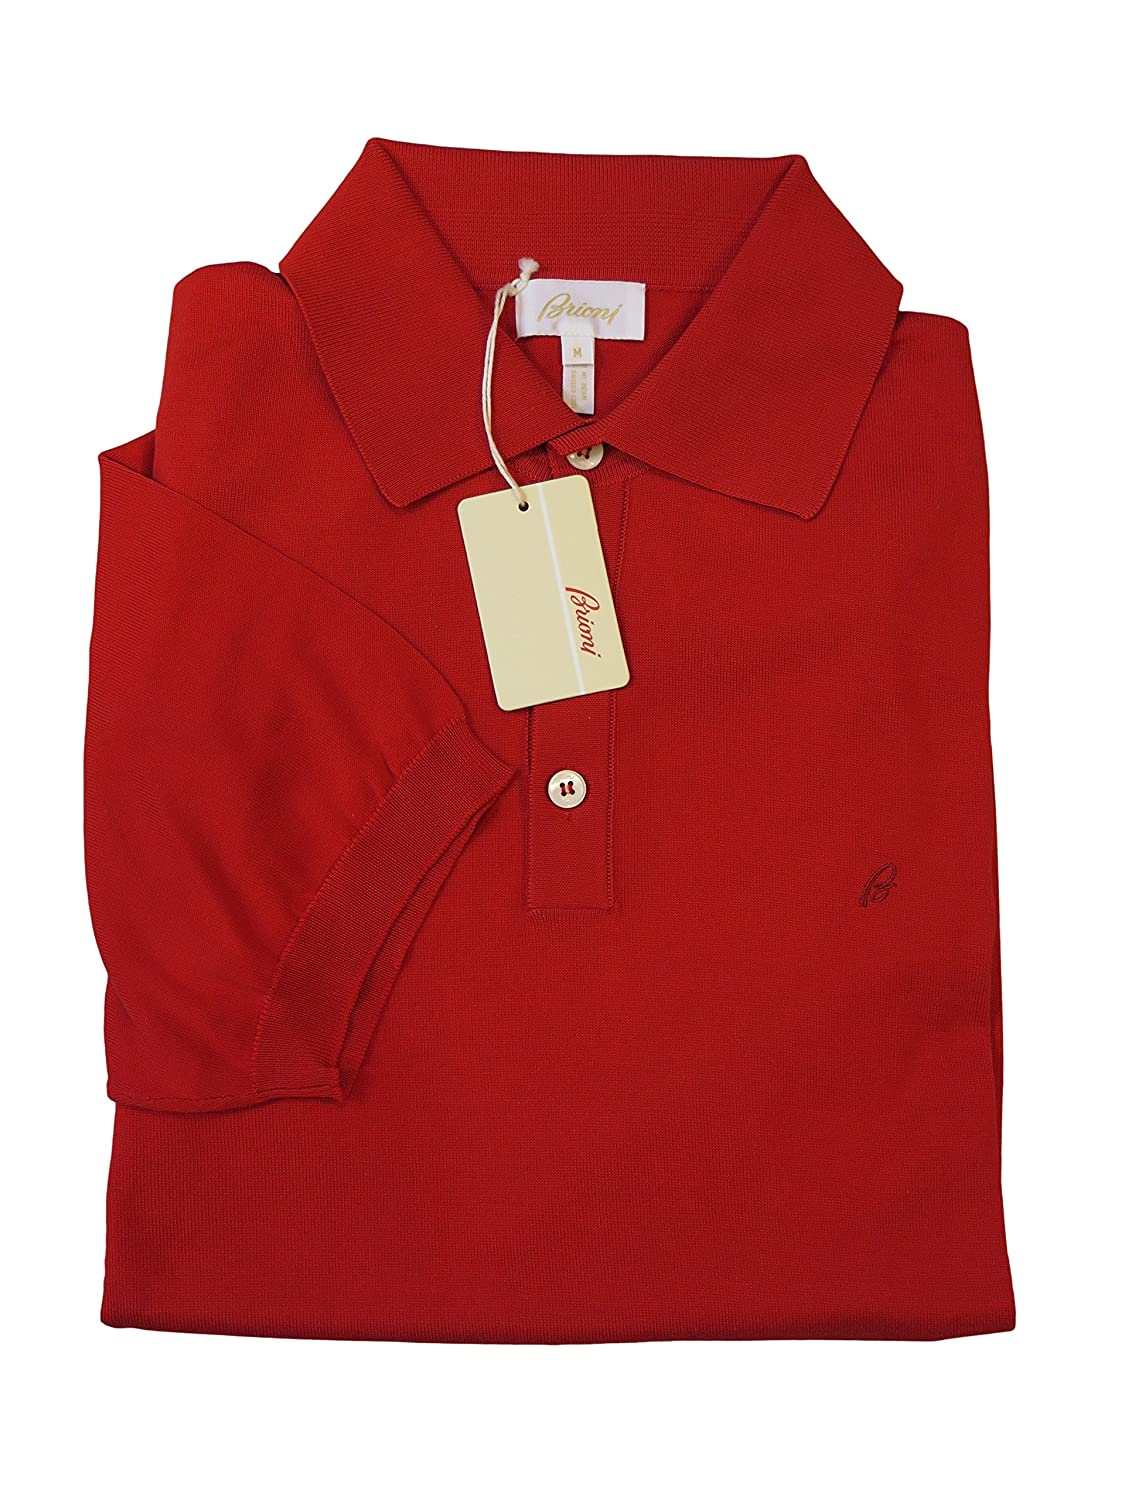 Brioni Red Cotton Short Sleeve Polo Sweater